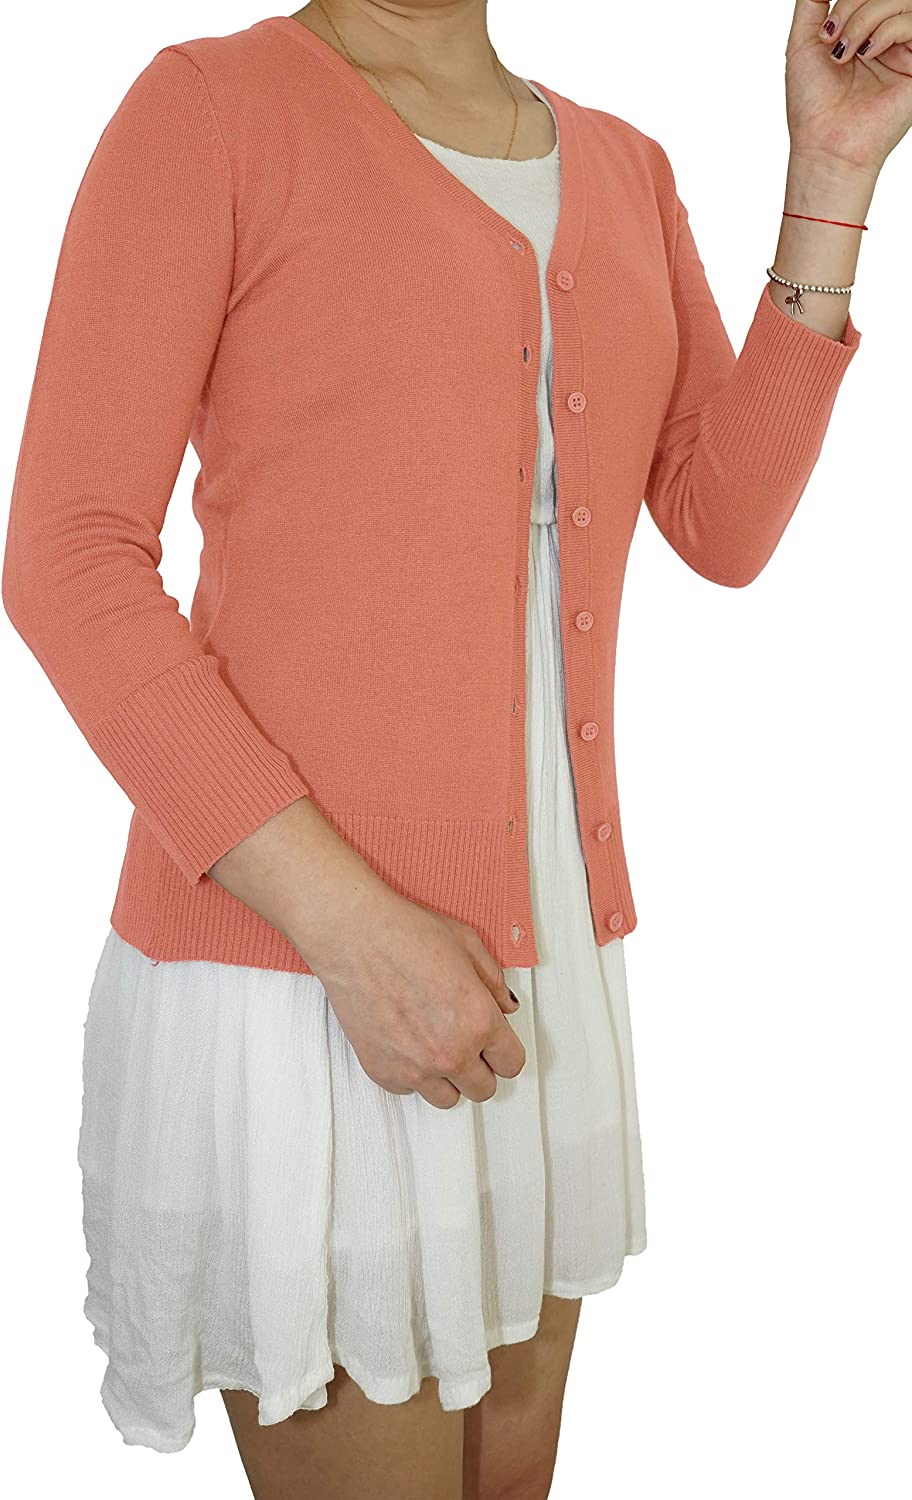 Vintage Cardigan for Women - 3/4 Sleeve Button Down V-Neck Soft Knit - Casual Elegant Classic Basic Sweater